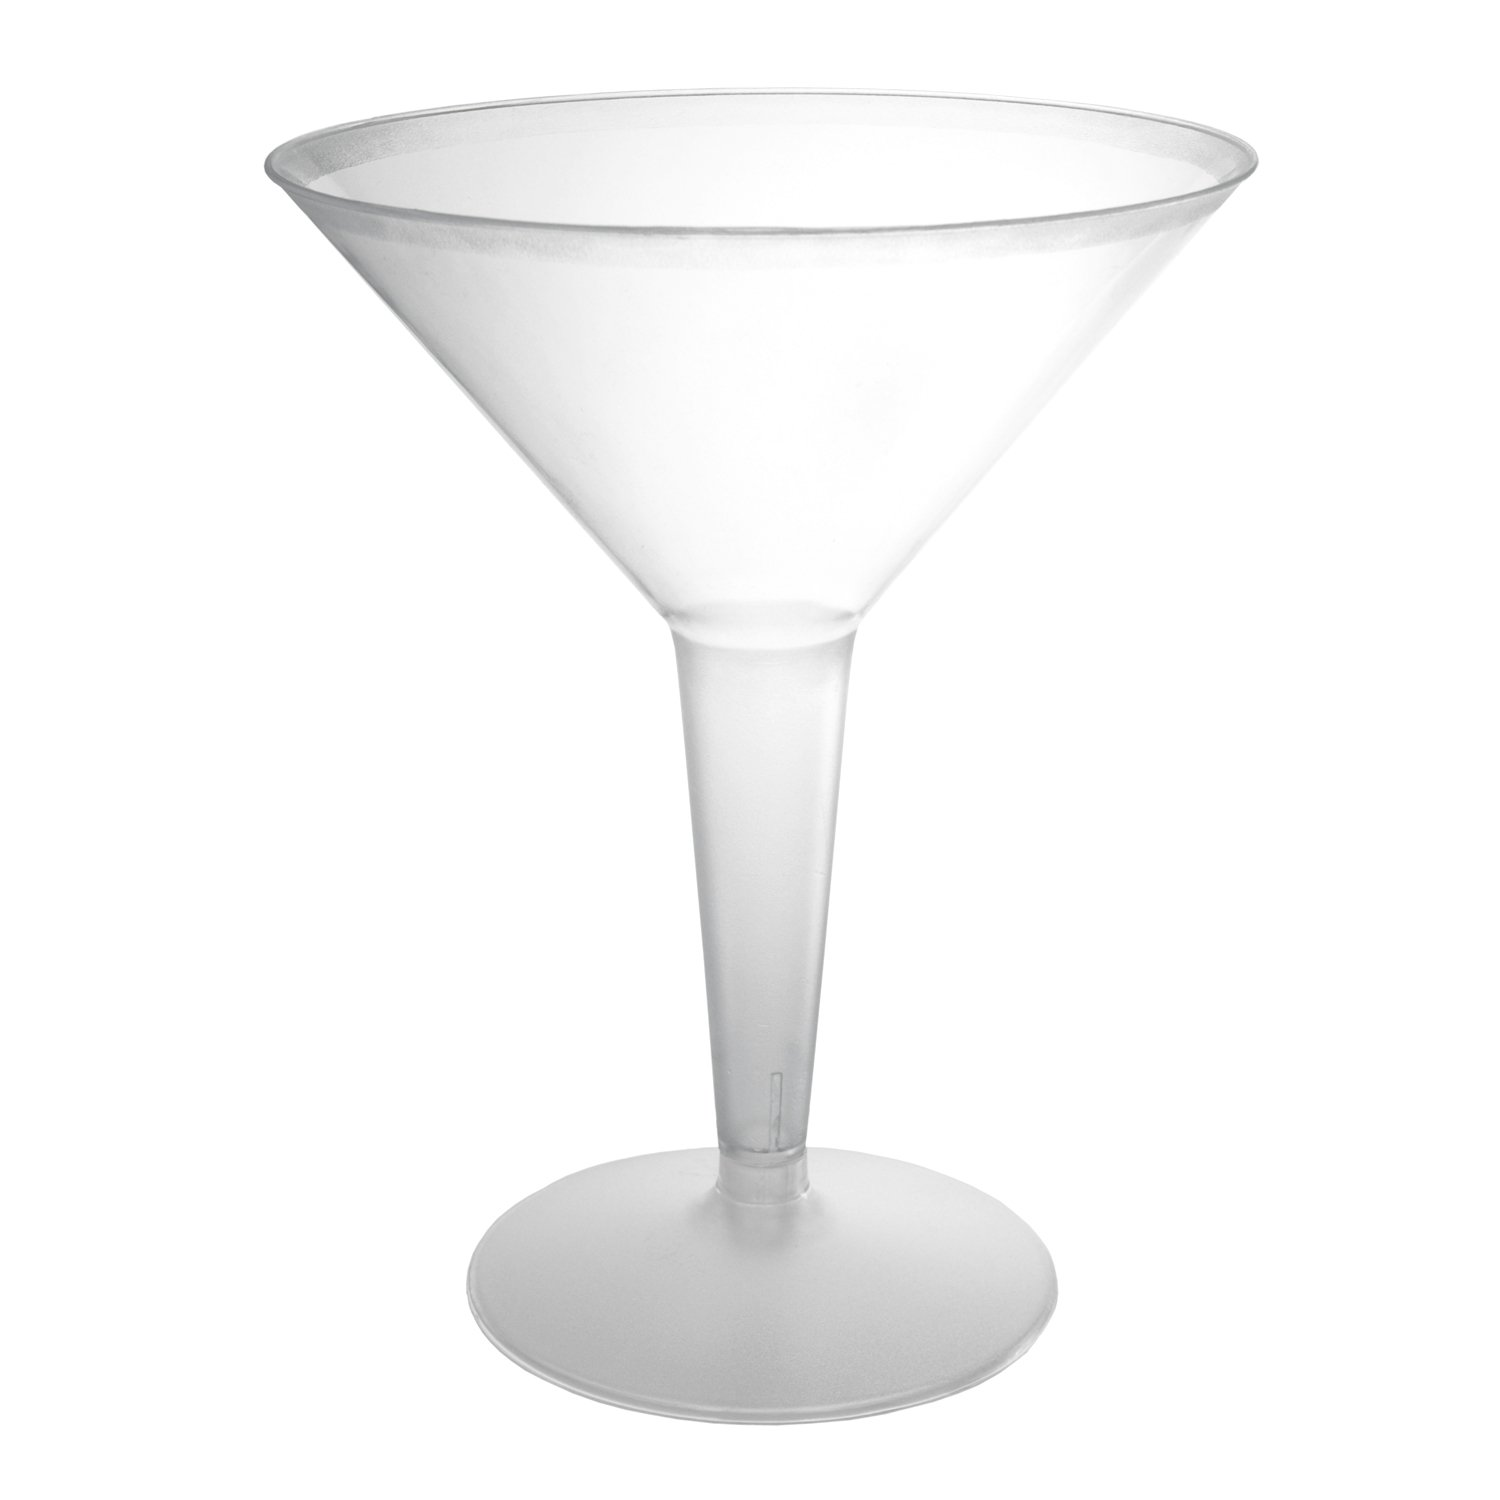 Party Essentials N81021 Hard Plastic 2-Piece Martini Glass, 8-Ounce Capacity, Clear (Case of 120)